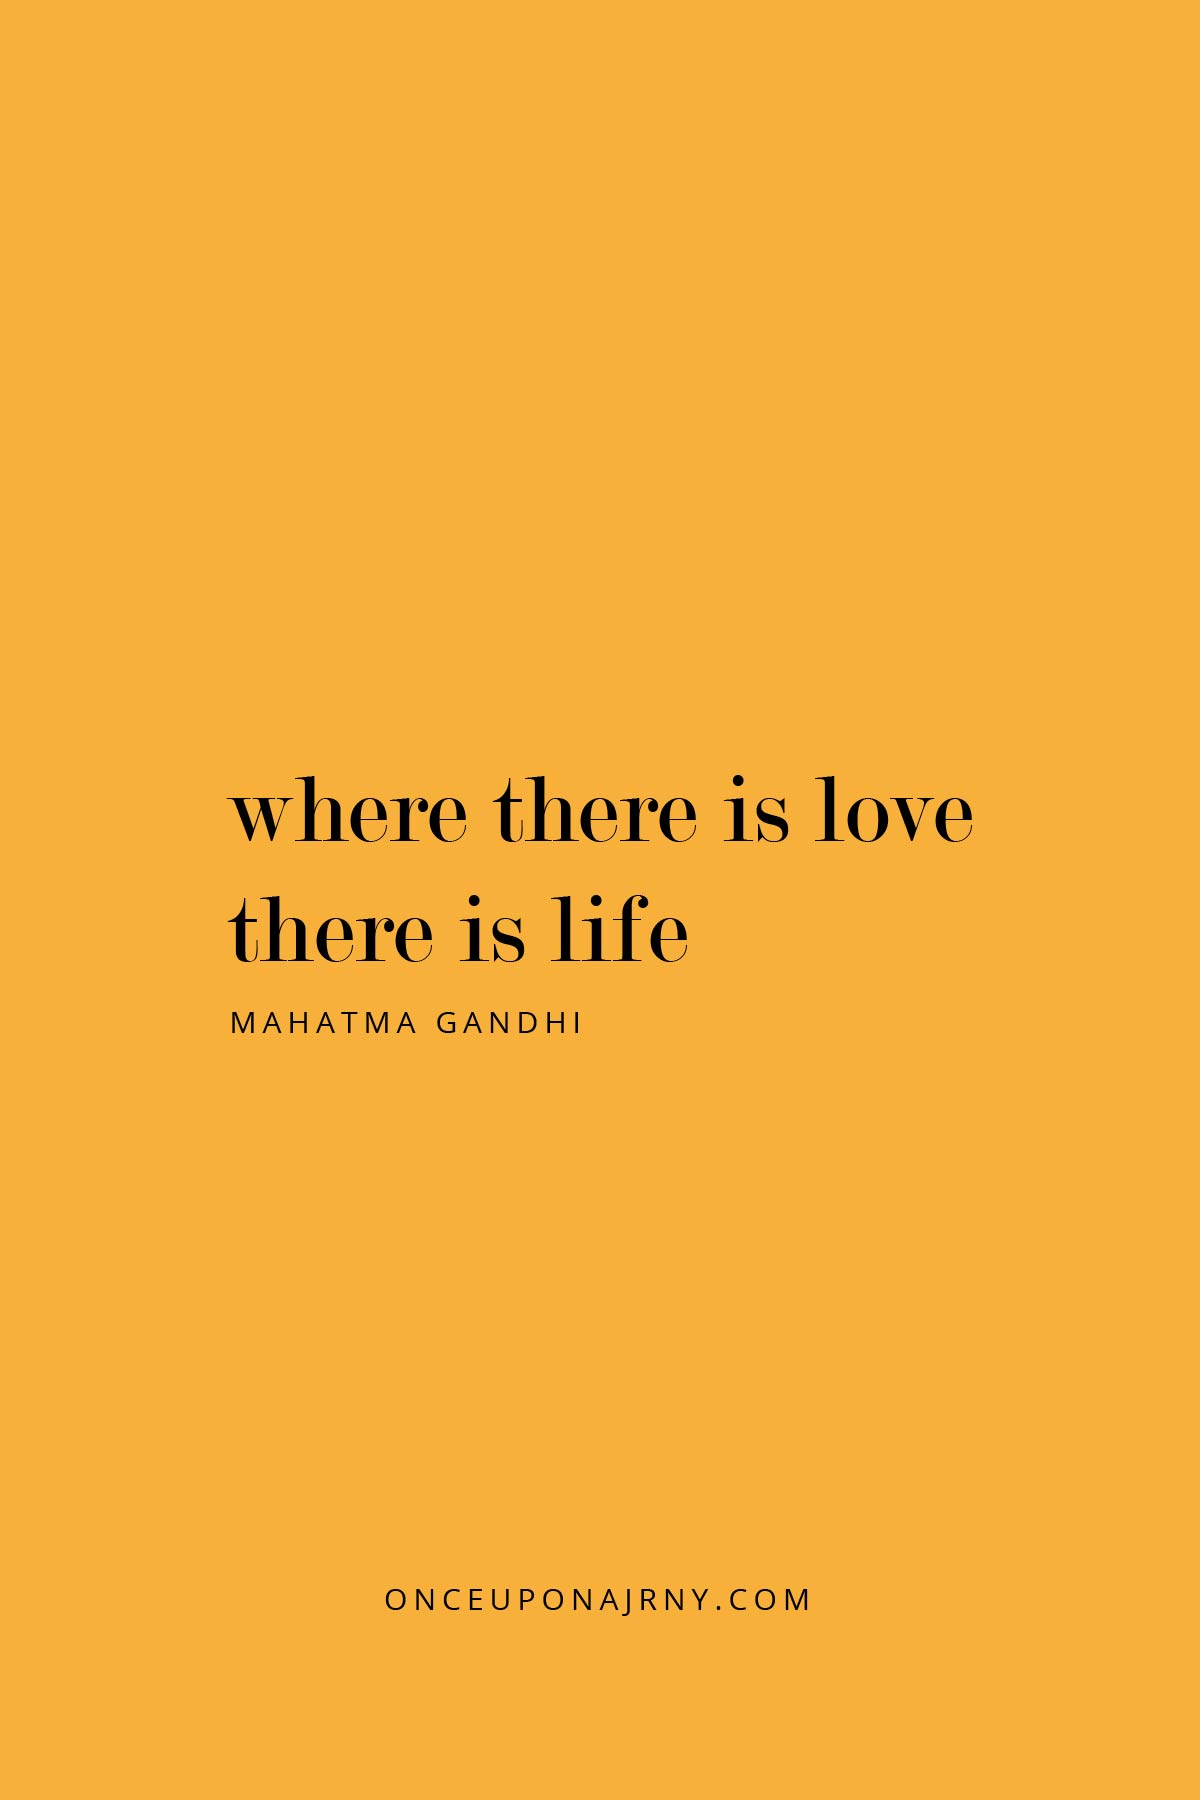 Where there is love, there is life - Mahatma Gandhi lgbtq quotes